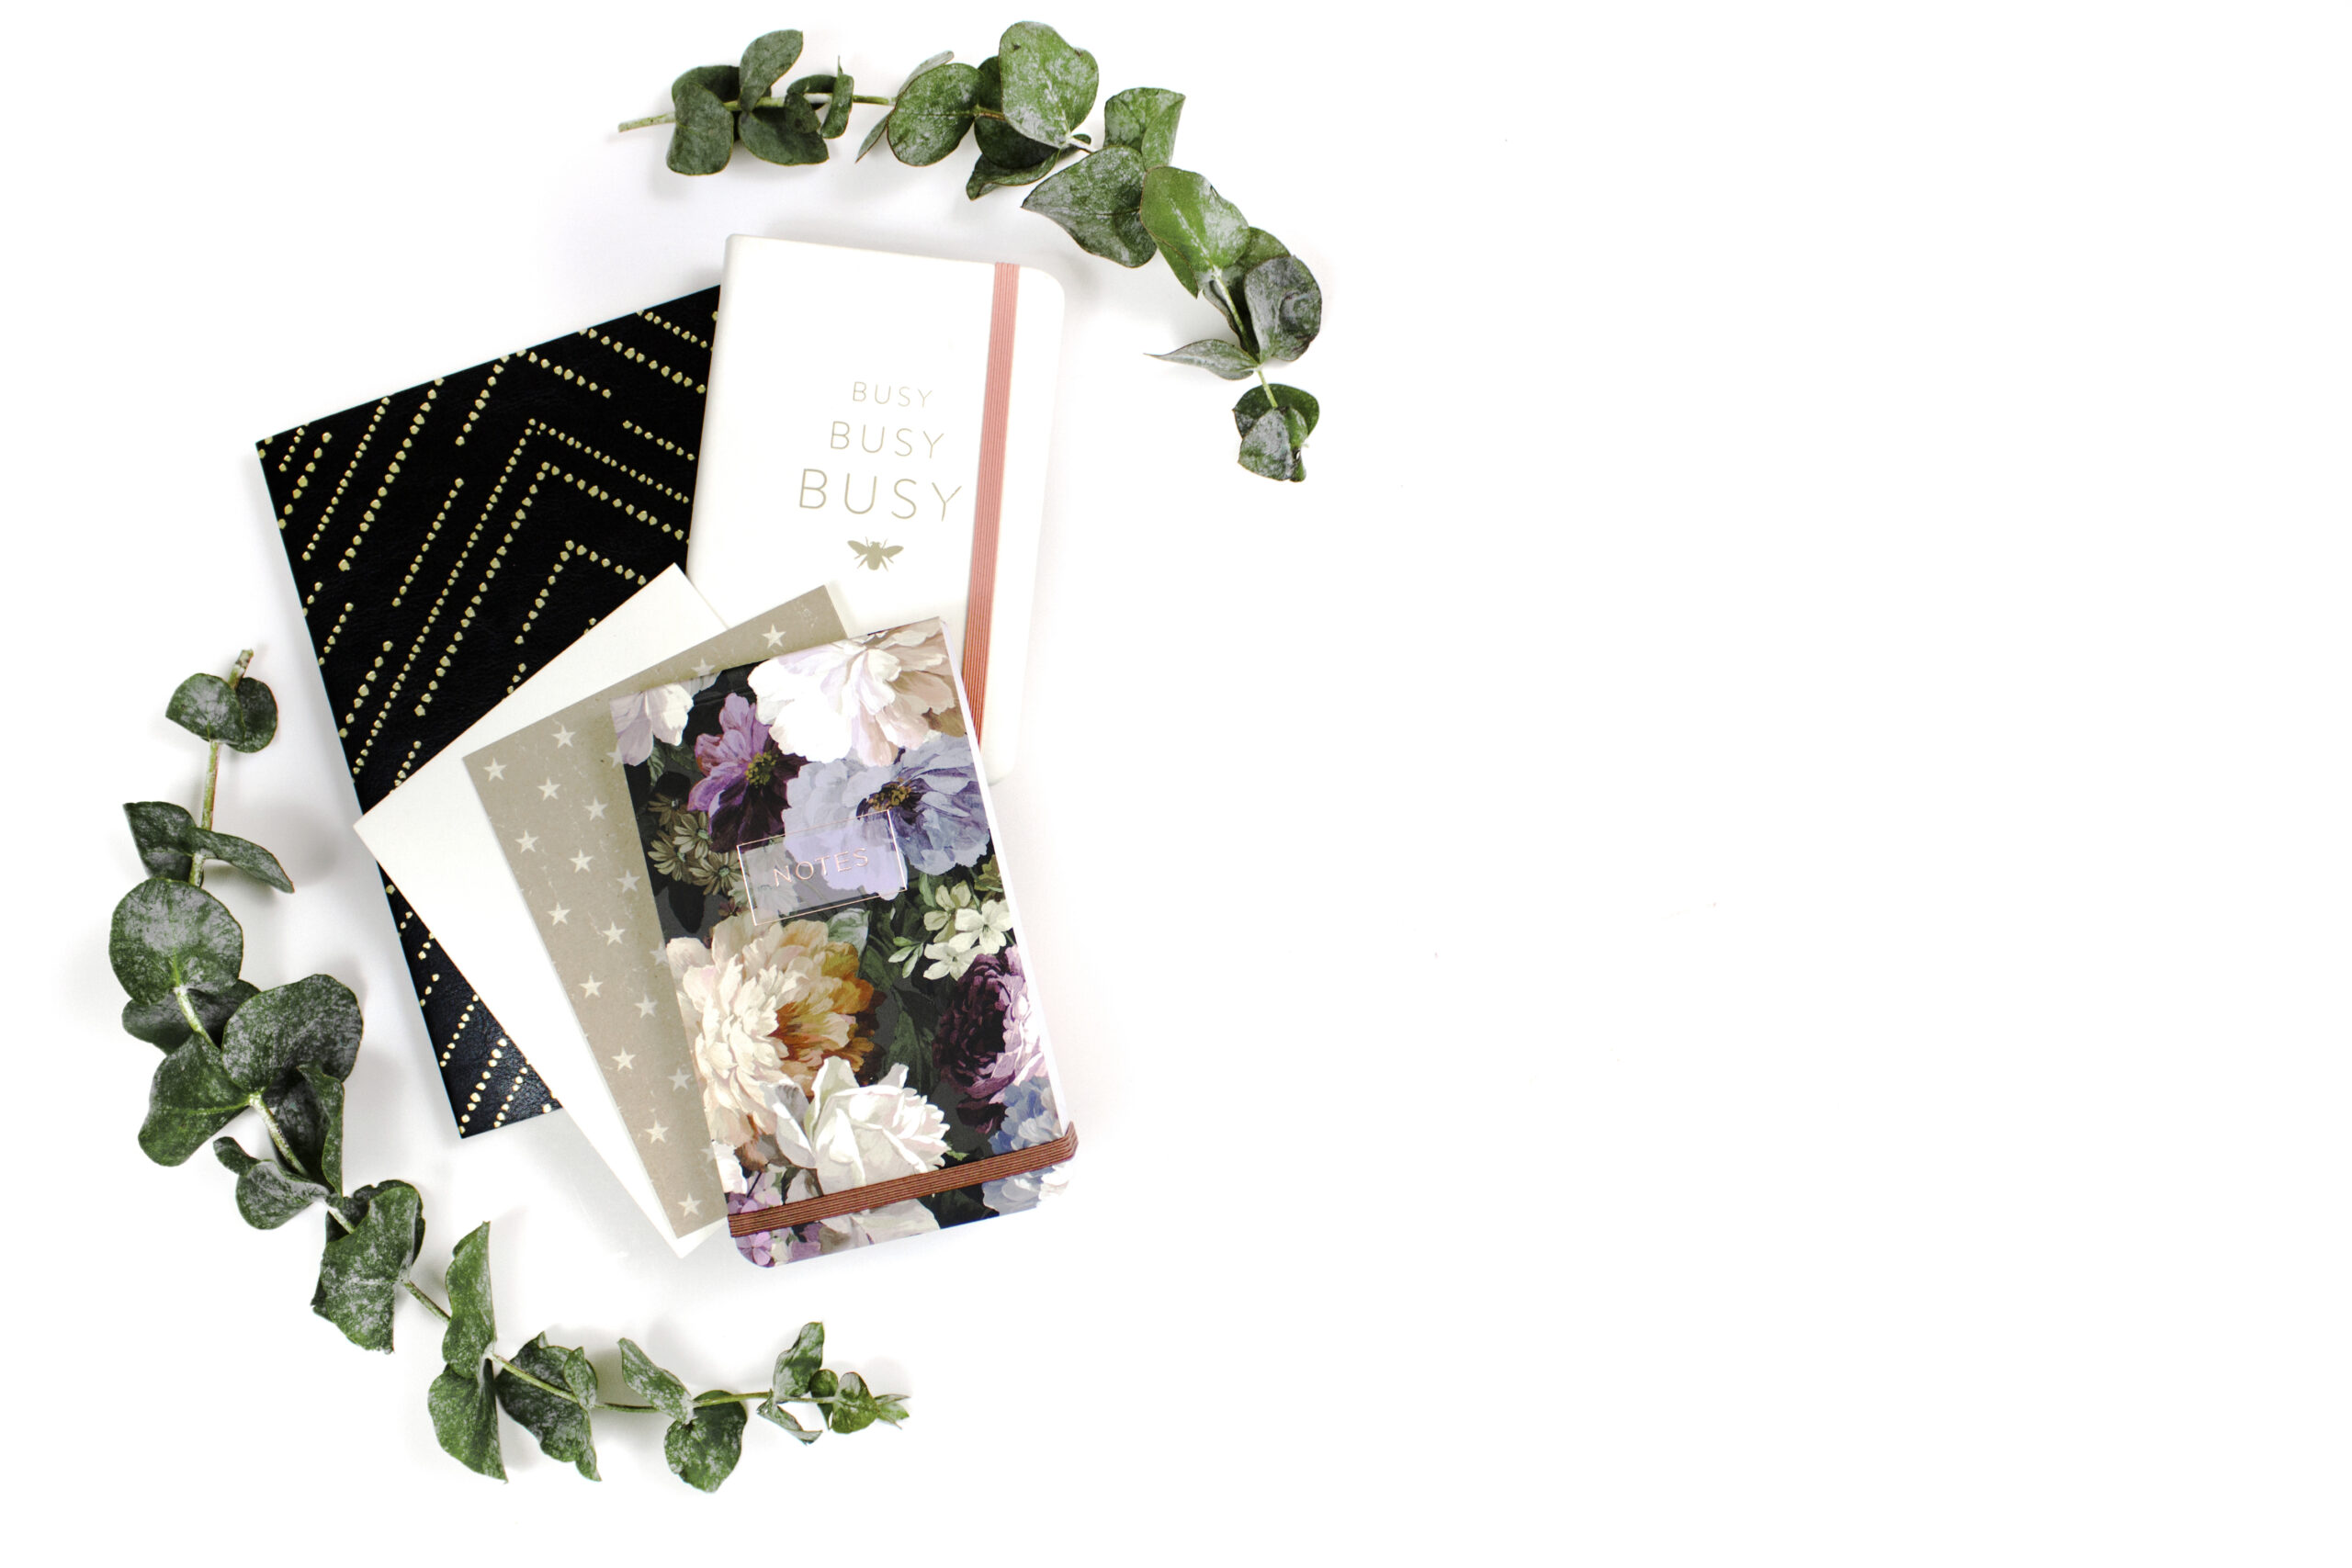 Flatlay photograph featuring pile of notebooks and leaves surrounding.